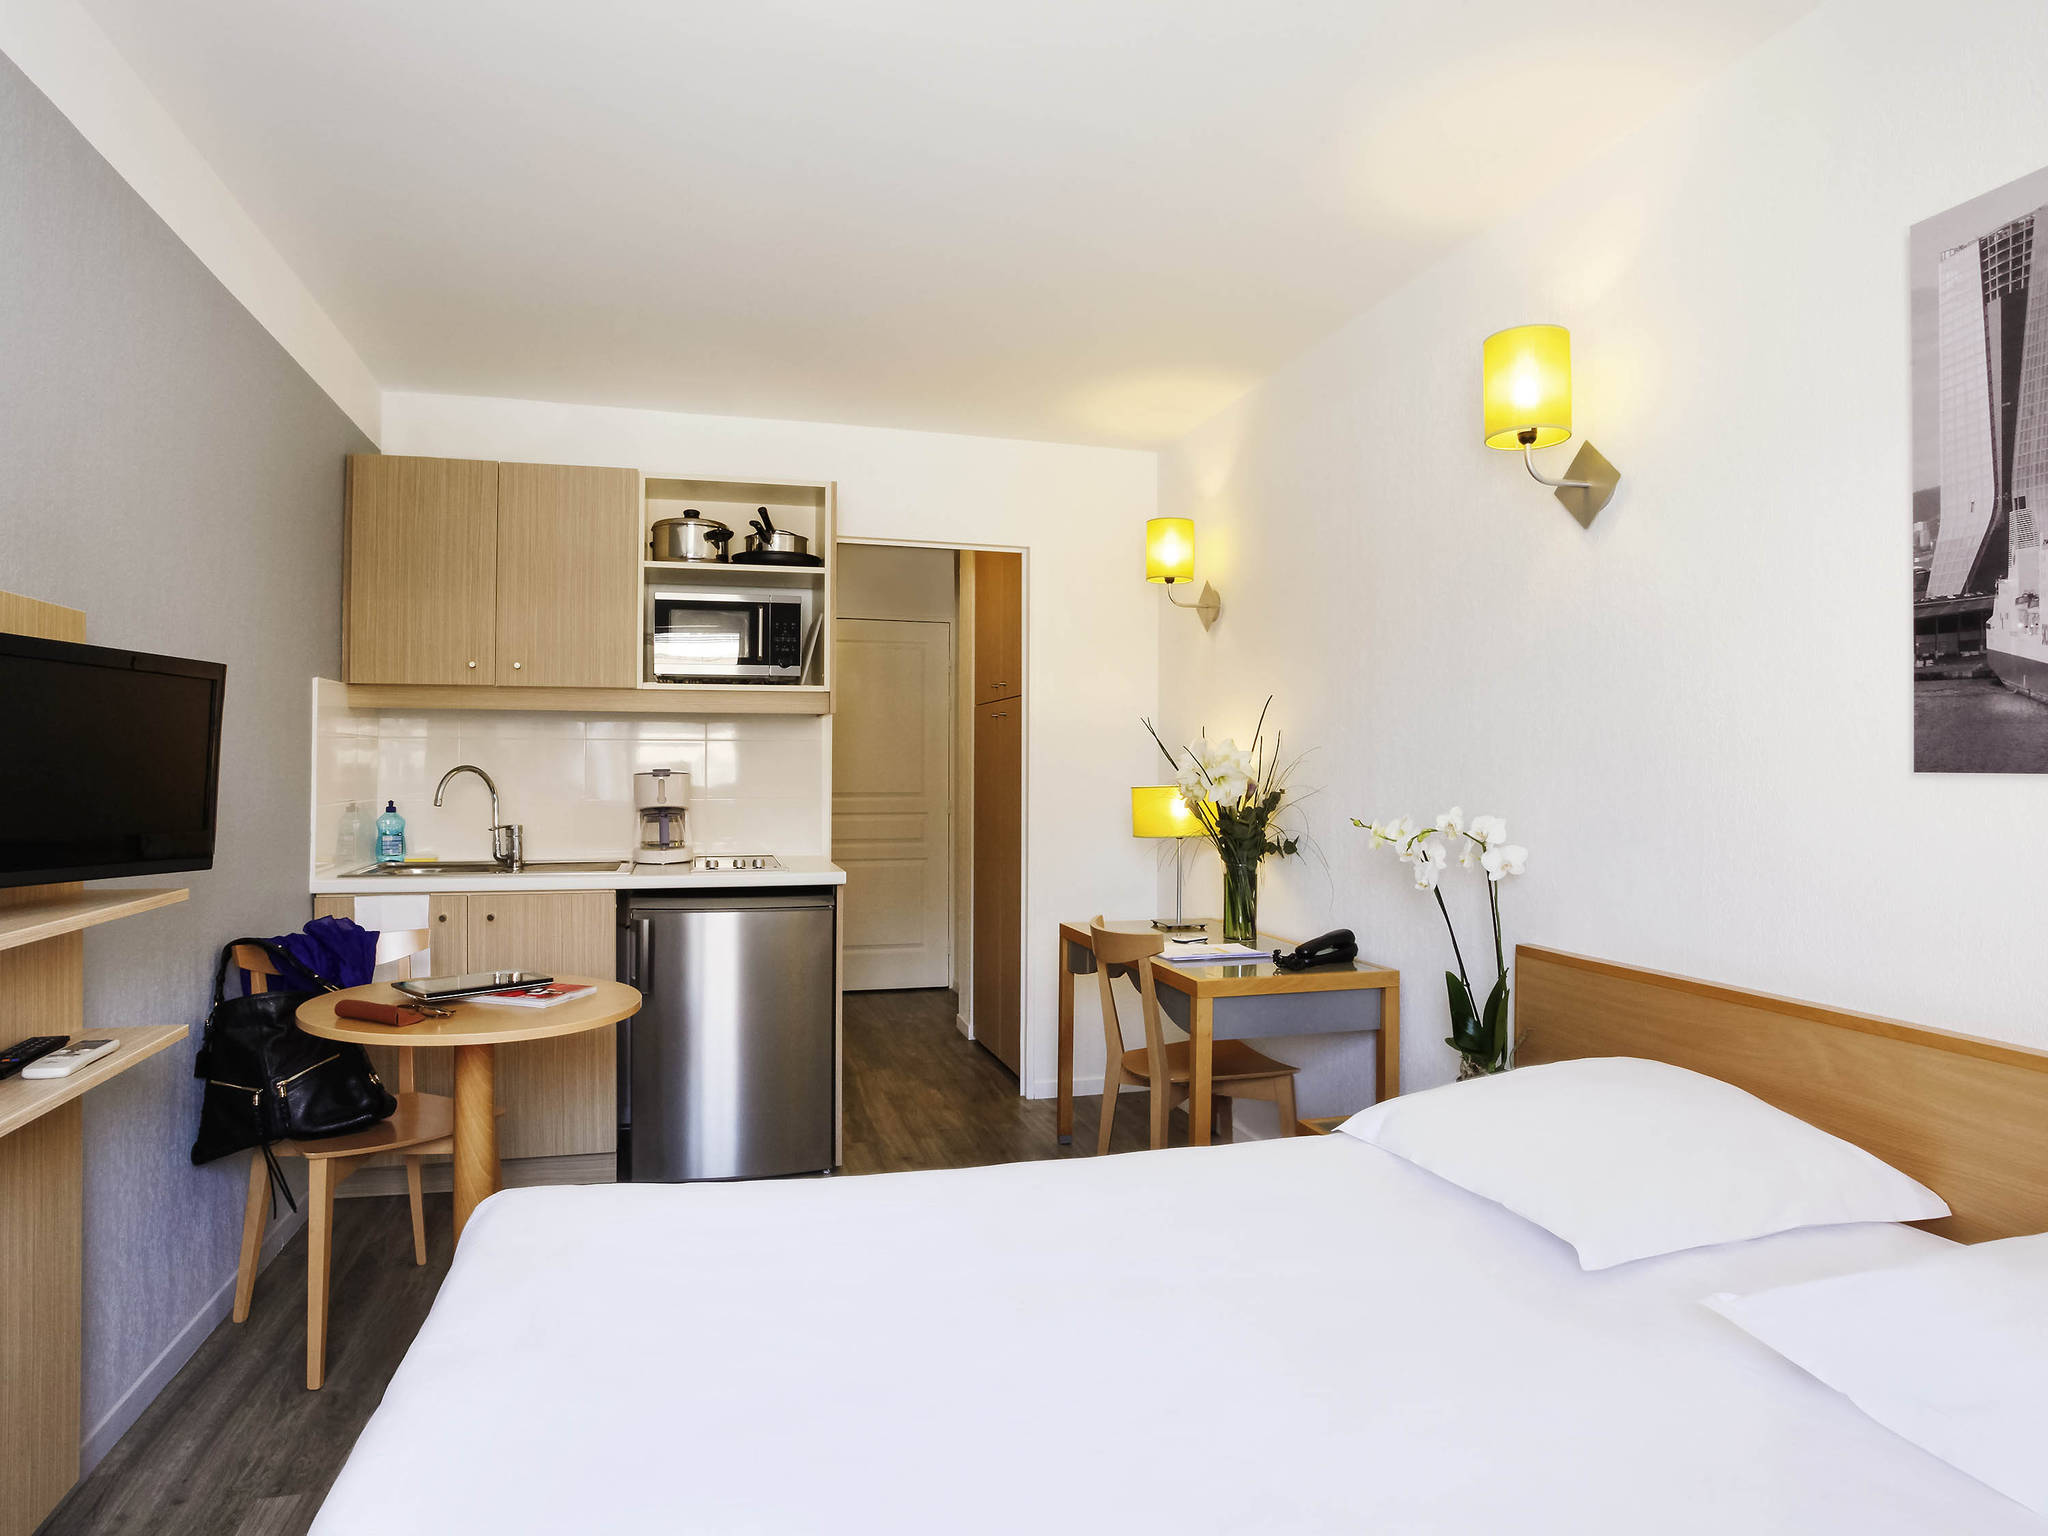 Appart hotel marseille 13008 for Appart hotel tarif